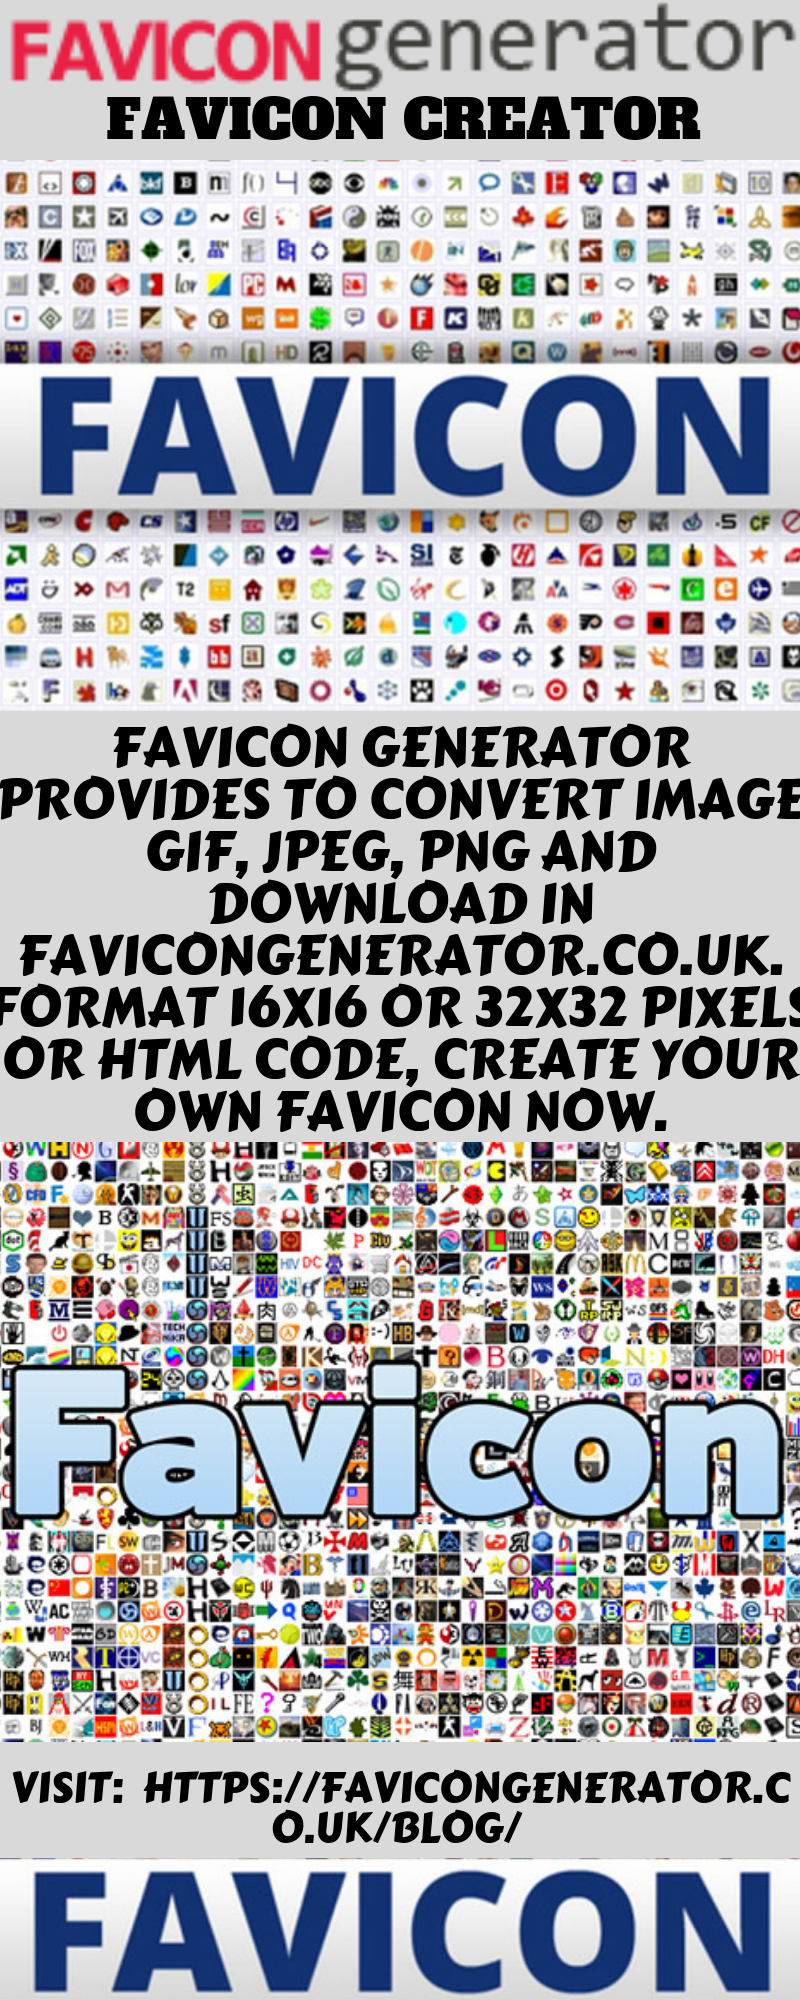 Favicon creator Favicon generator provides to convert